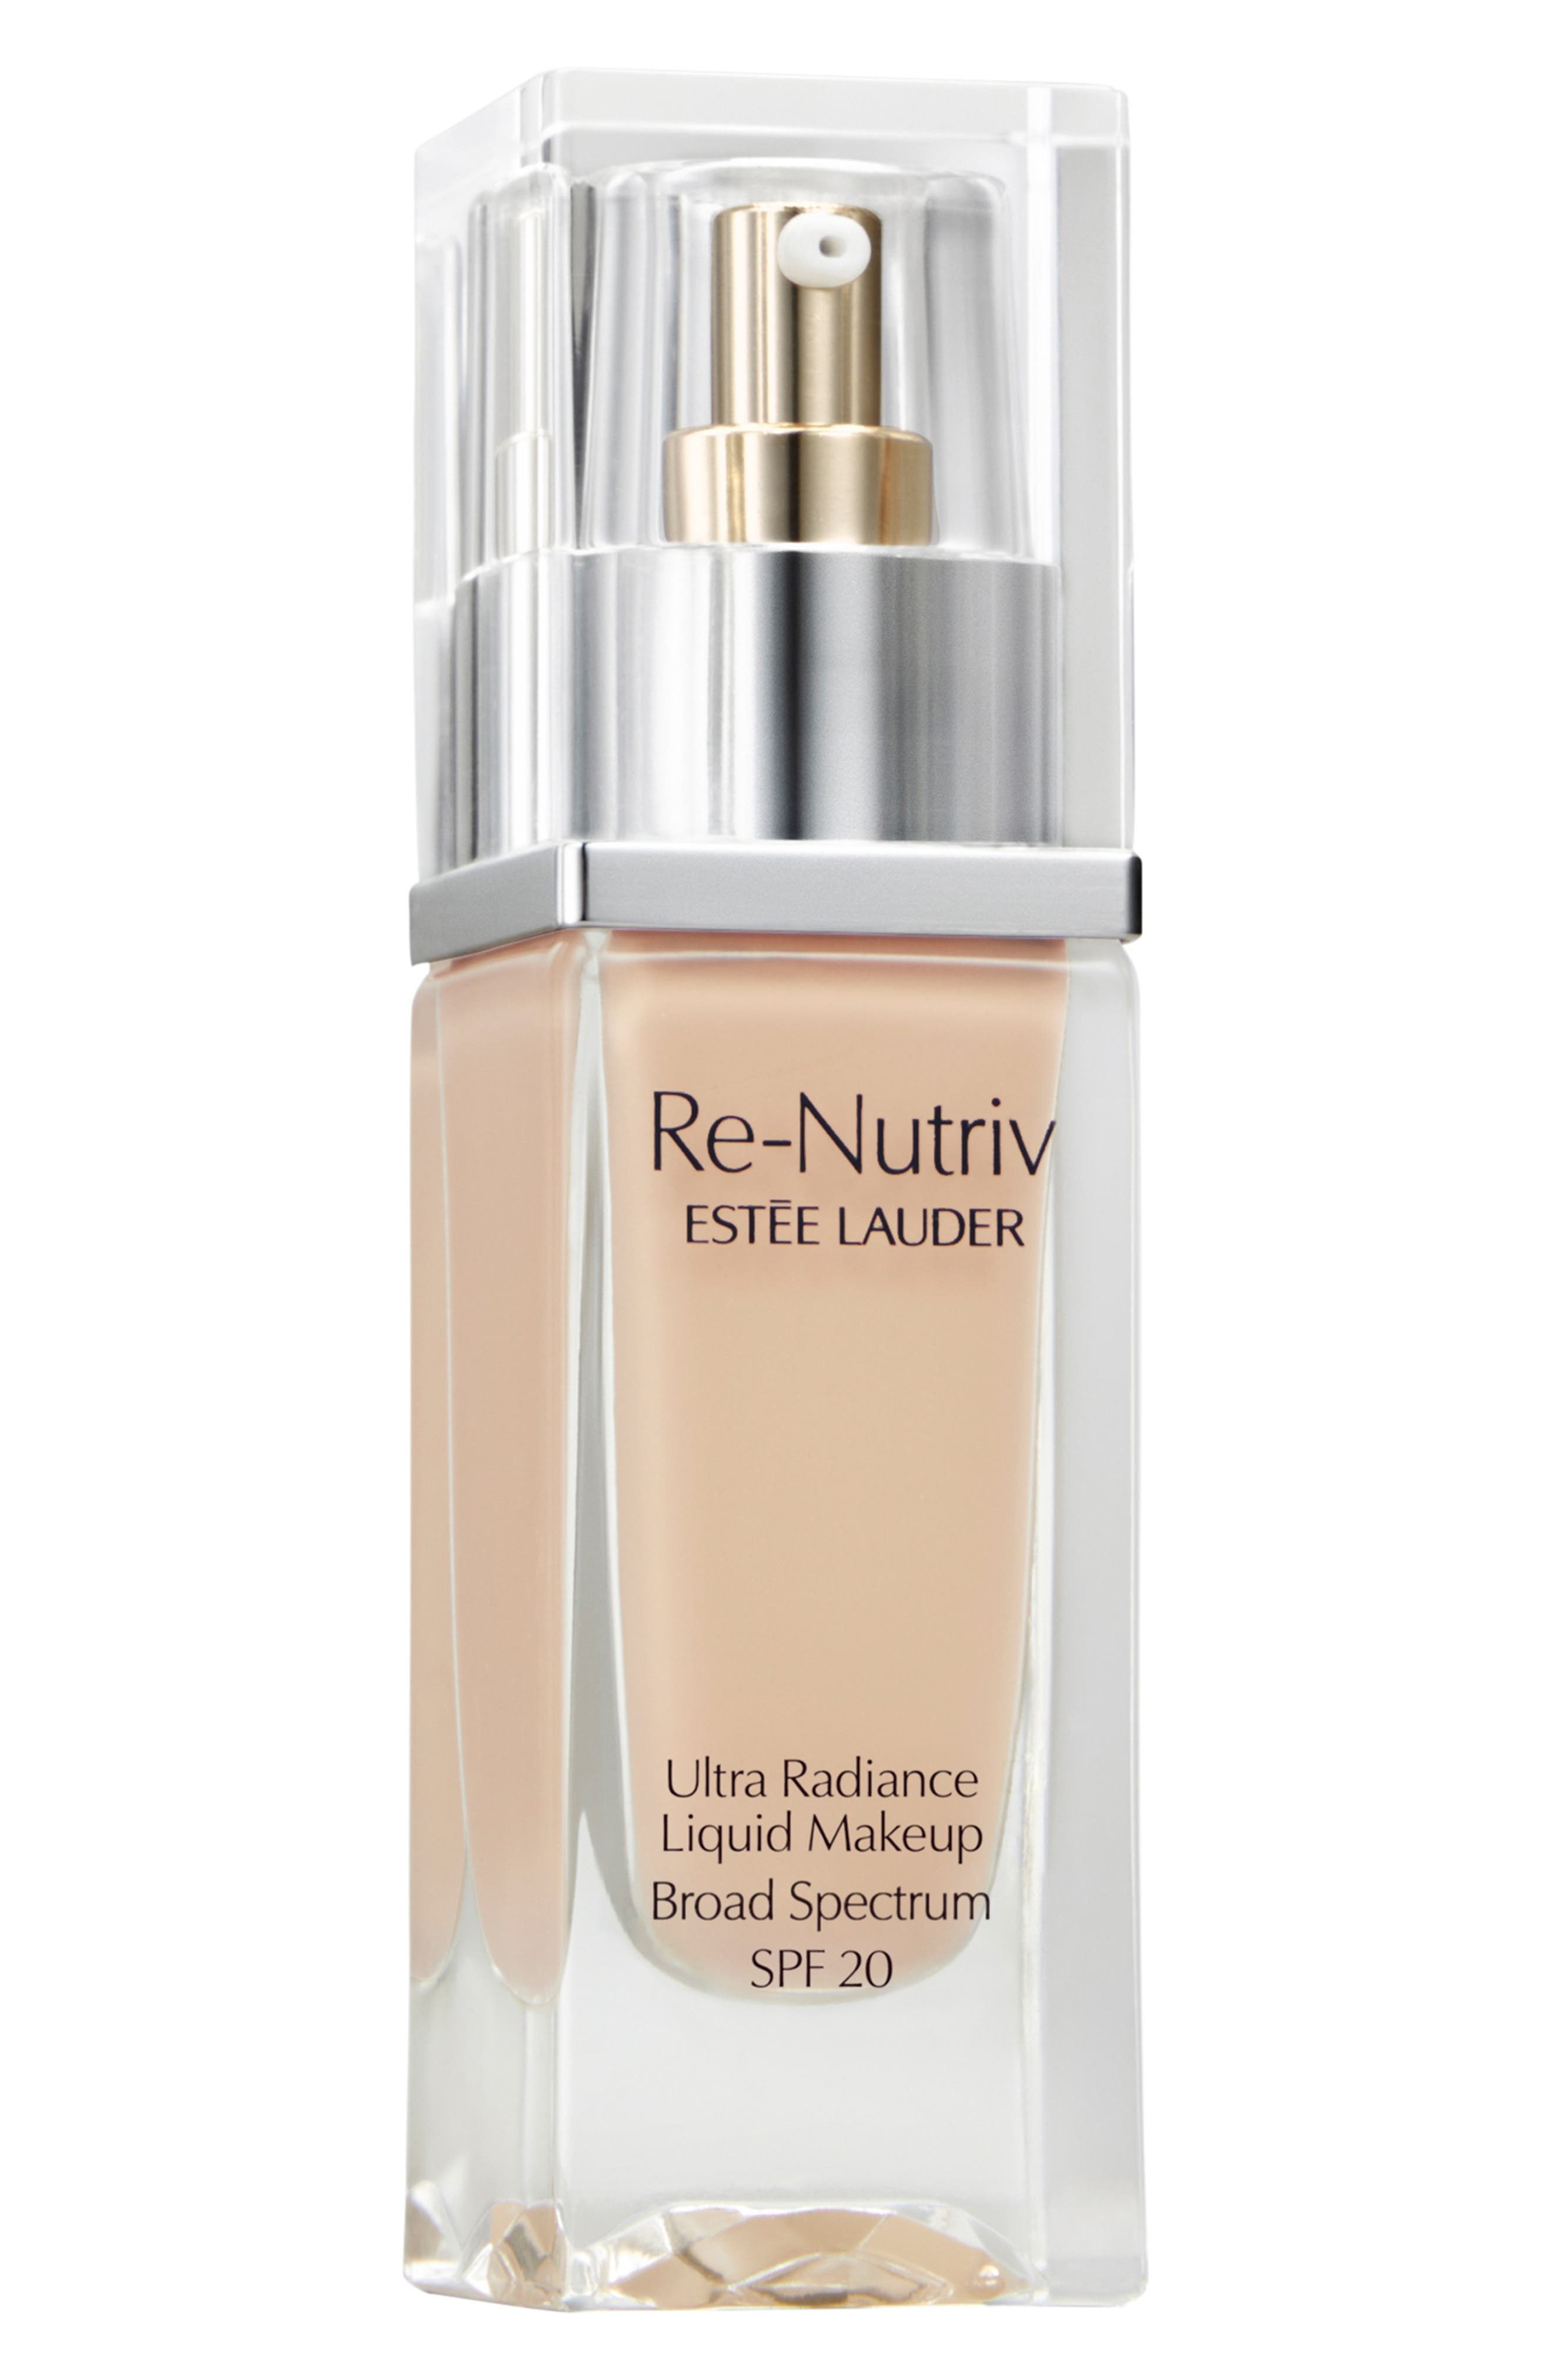 What it is: A luxurious liquid foundation infused with the radiant power of peridot, with medium-to-full coverage, lasting moisture and a jewel-like finish. What it does: This liquid makeup captures the power of two precious peridot stones (based on weight) in each bottle to help boost skin\\\'s natural energy for renewed vibrancy (in an in-vitro test). The formula is also infused with Re-Nutriv\\\'s advanced skin care technology to leave skin soft,